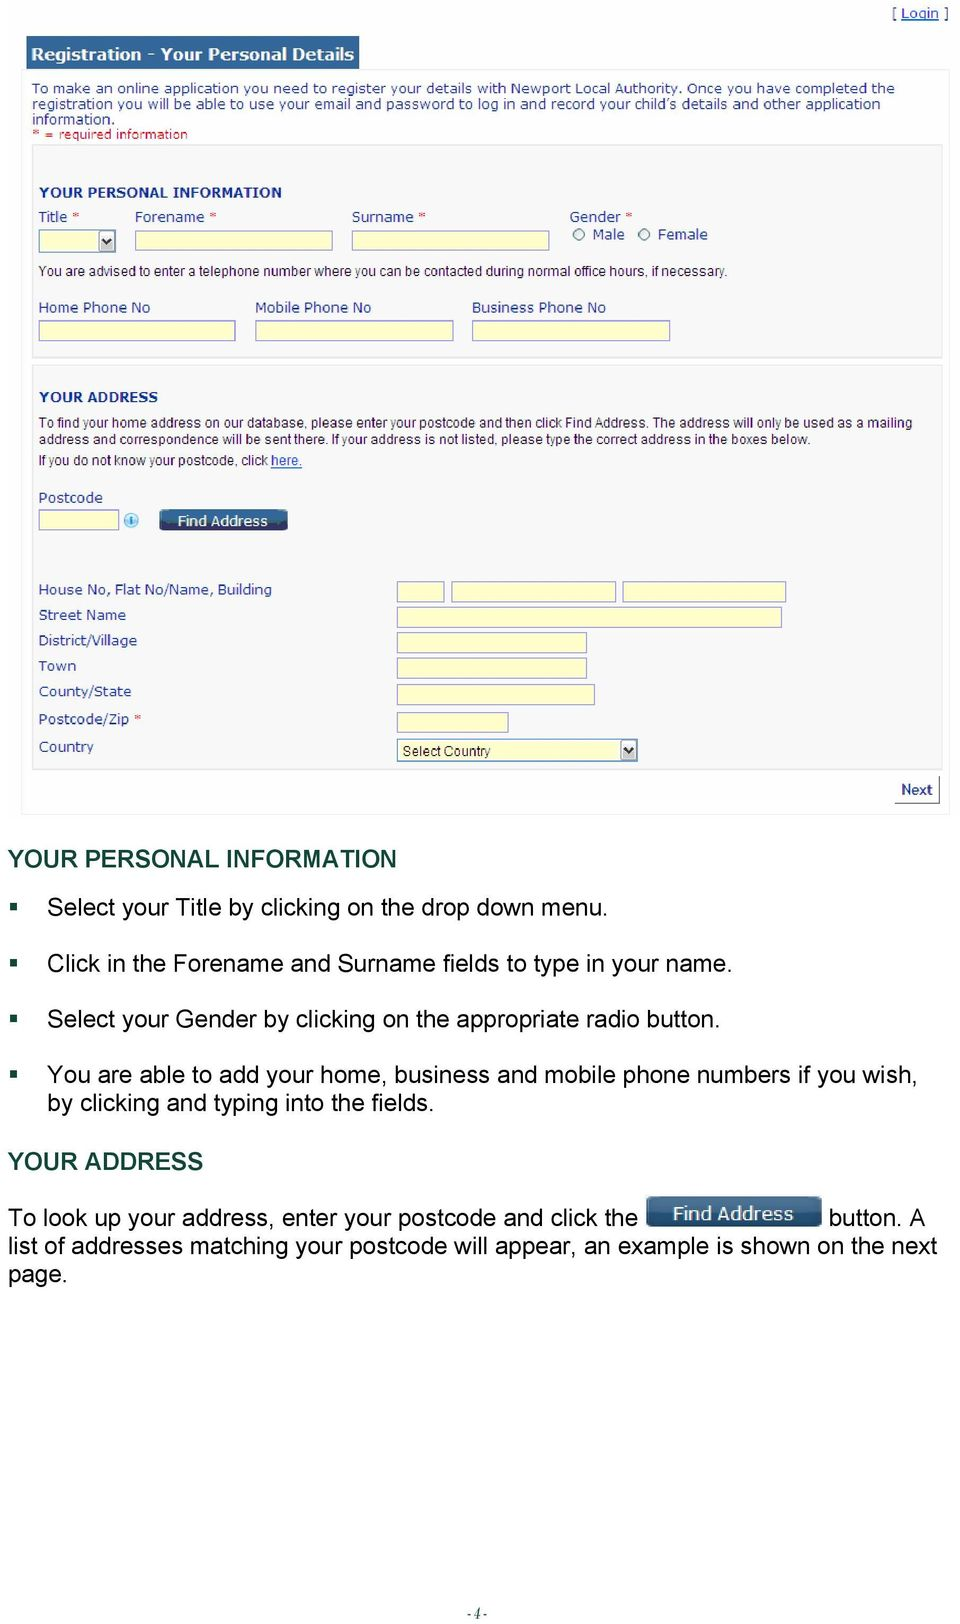 You are able to add your home, business and mobile phone numbers if you wish, by clicking and typing into the fields.